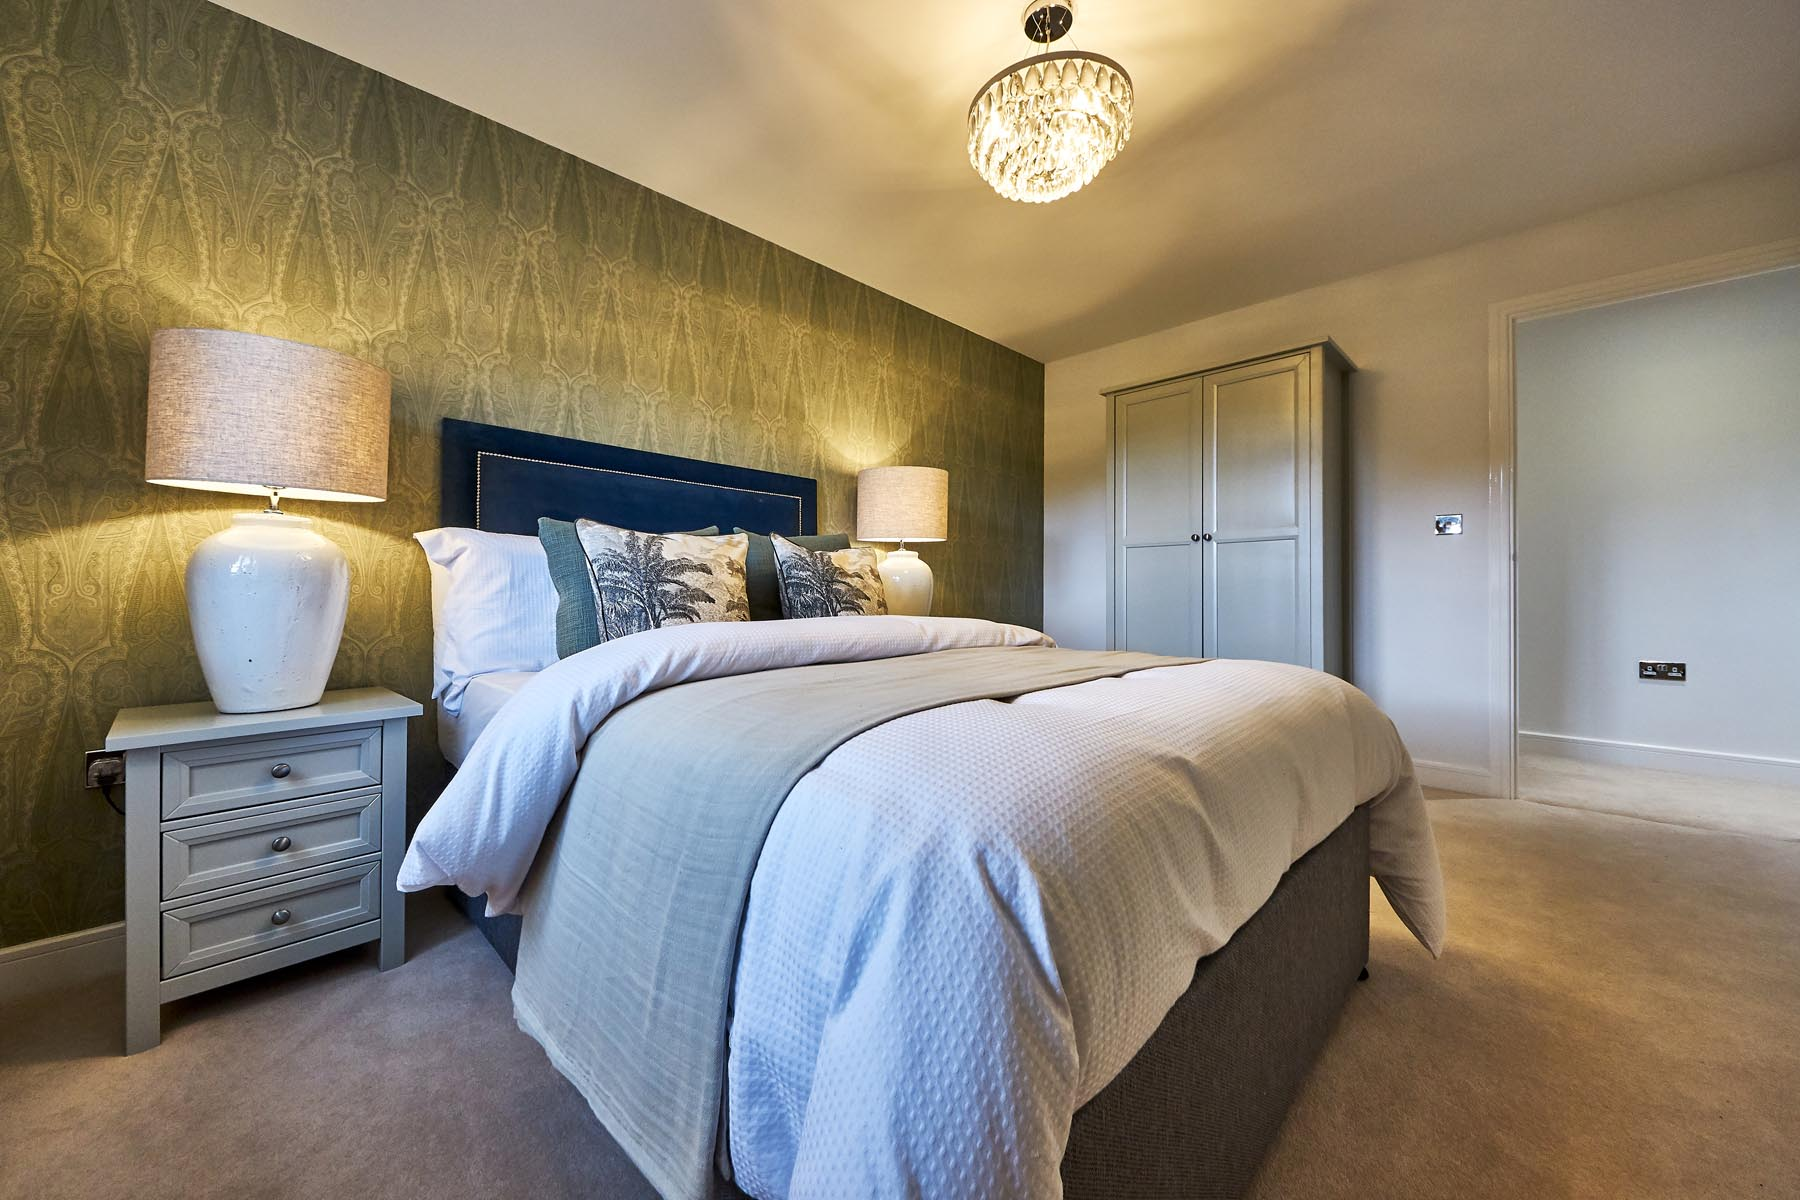 Woodland Edge - Shelford - 2nd bedroom